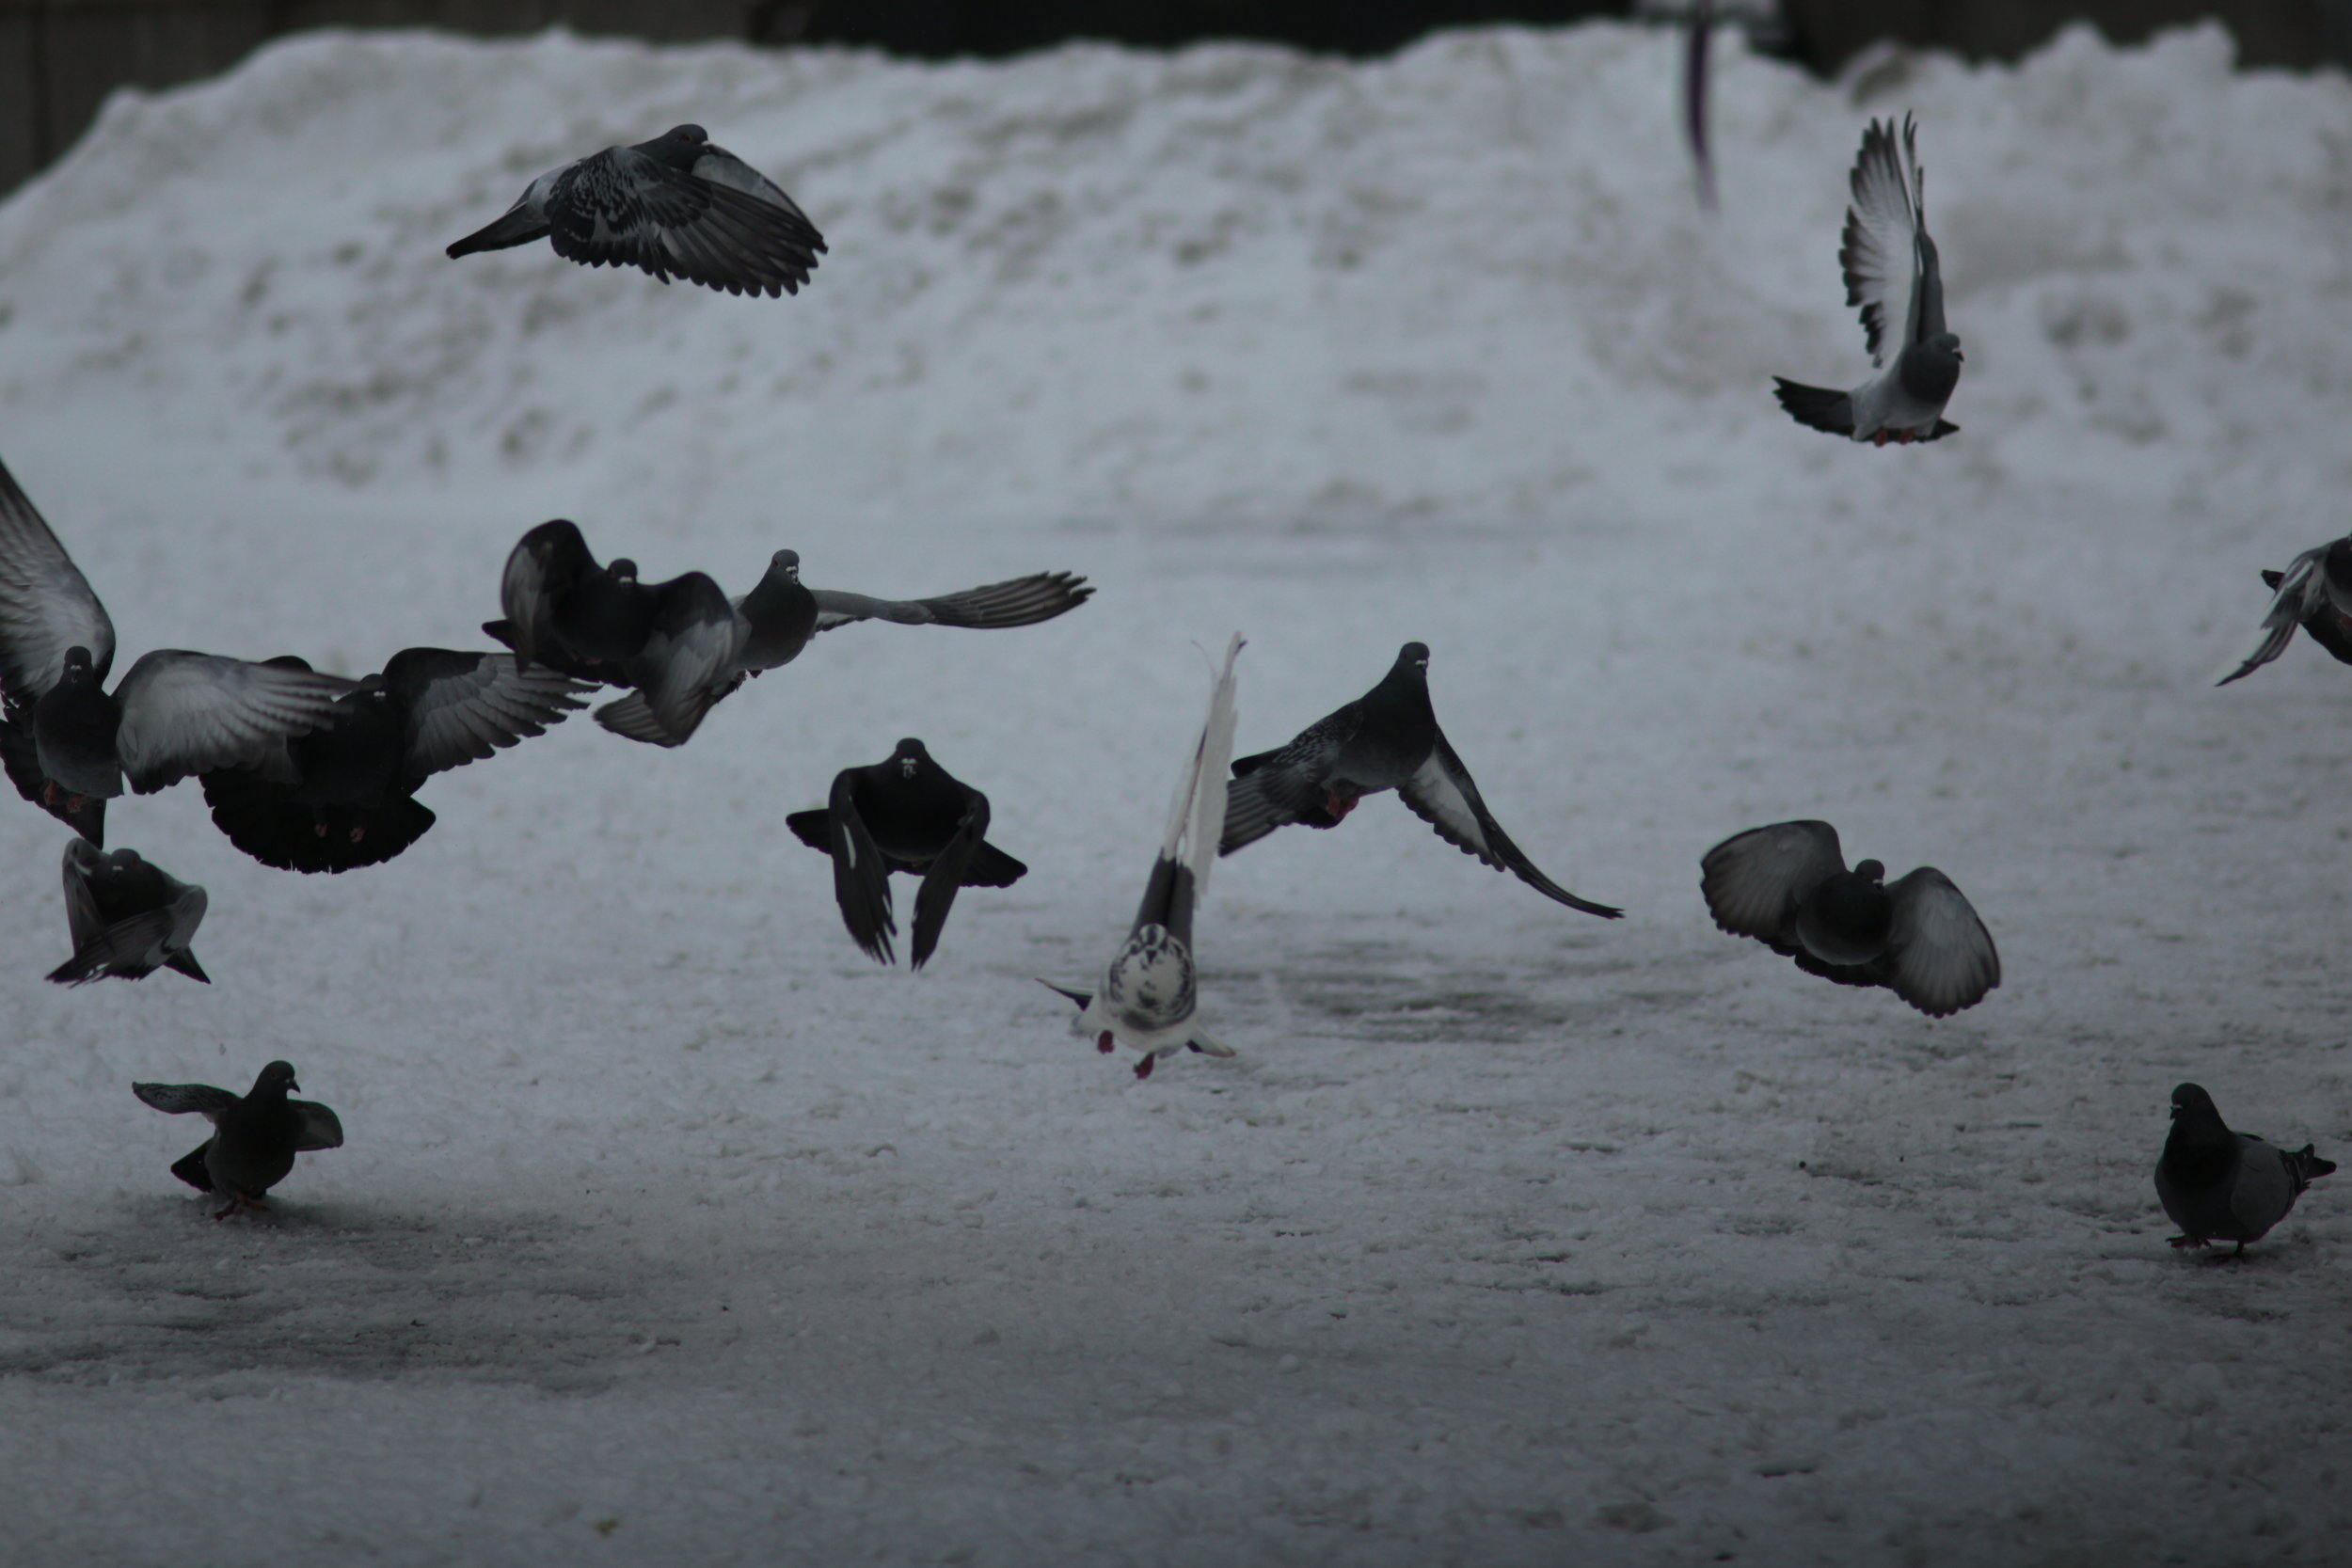 Pigeons Taking Flight at base of | Simon Bolivar Statue | Canon EOS M, Canon FD 135mm 2.8